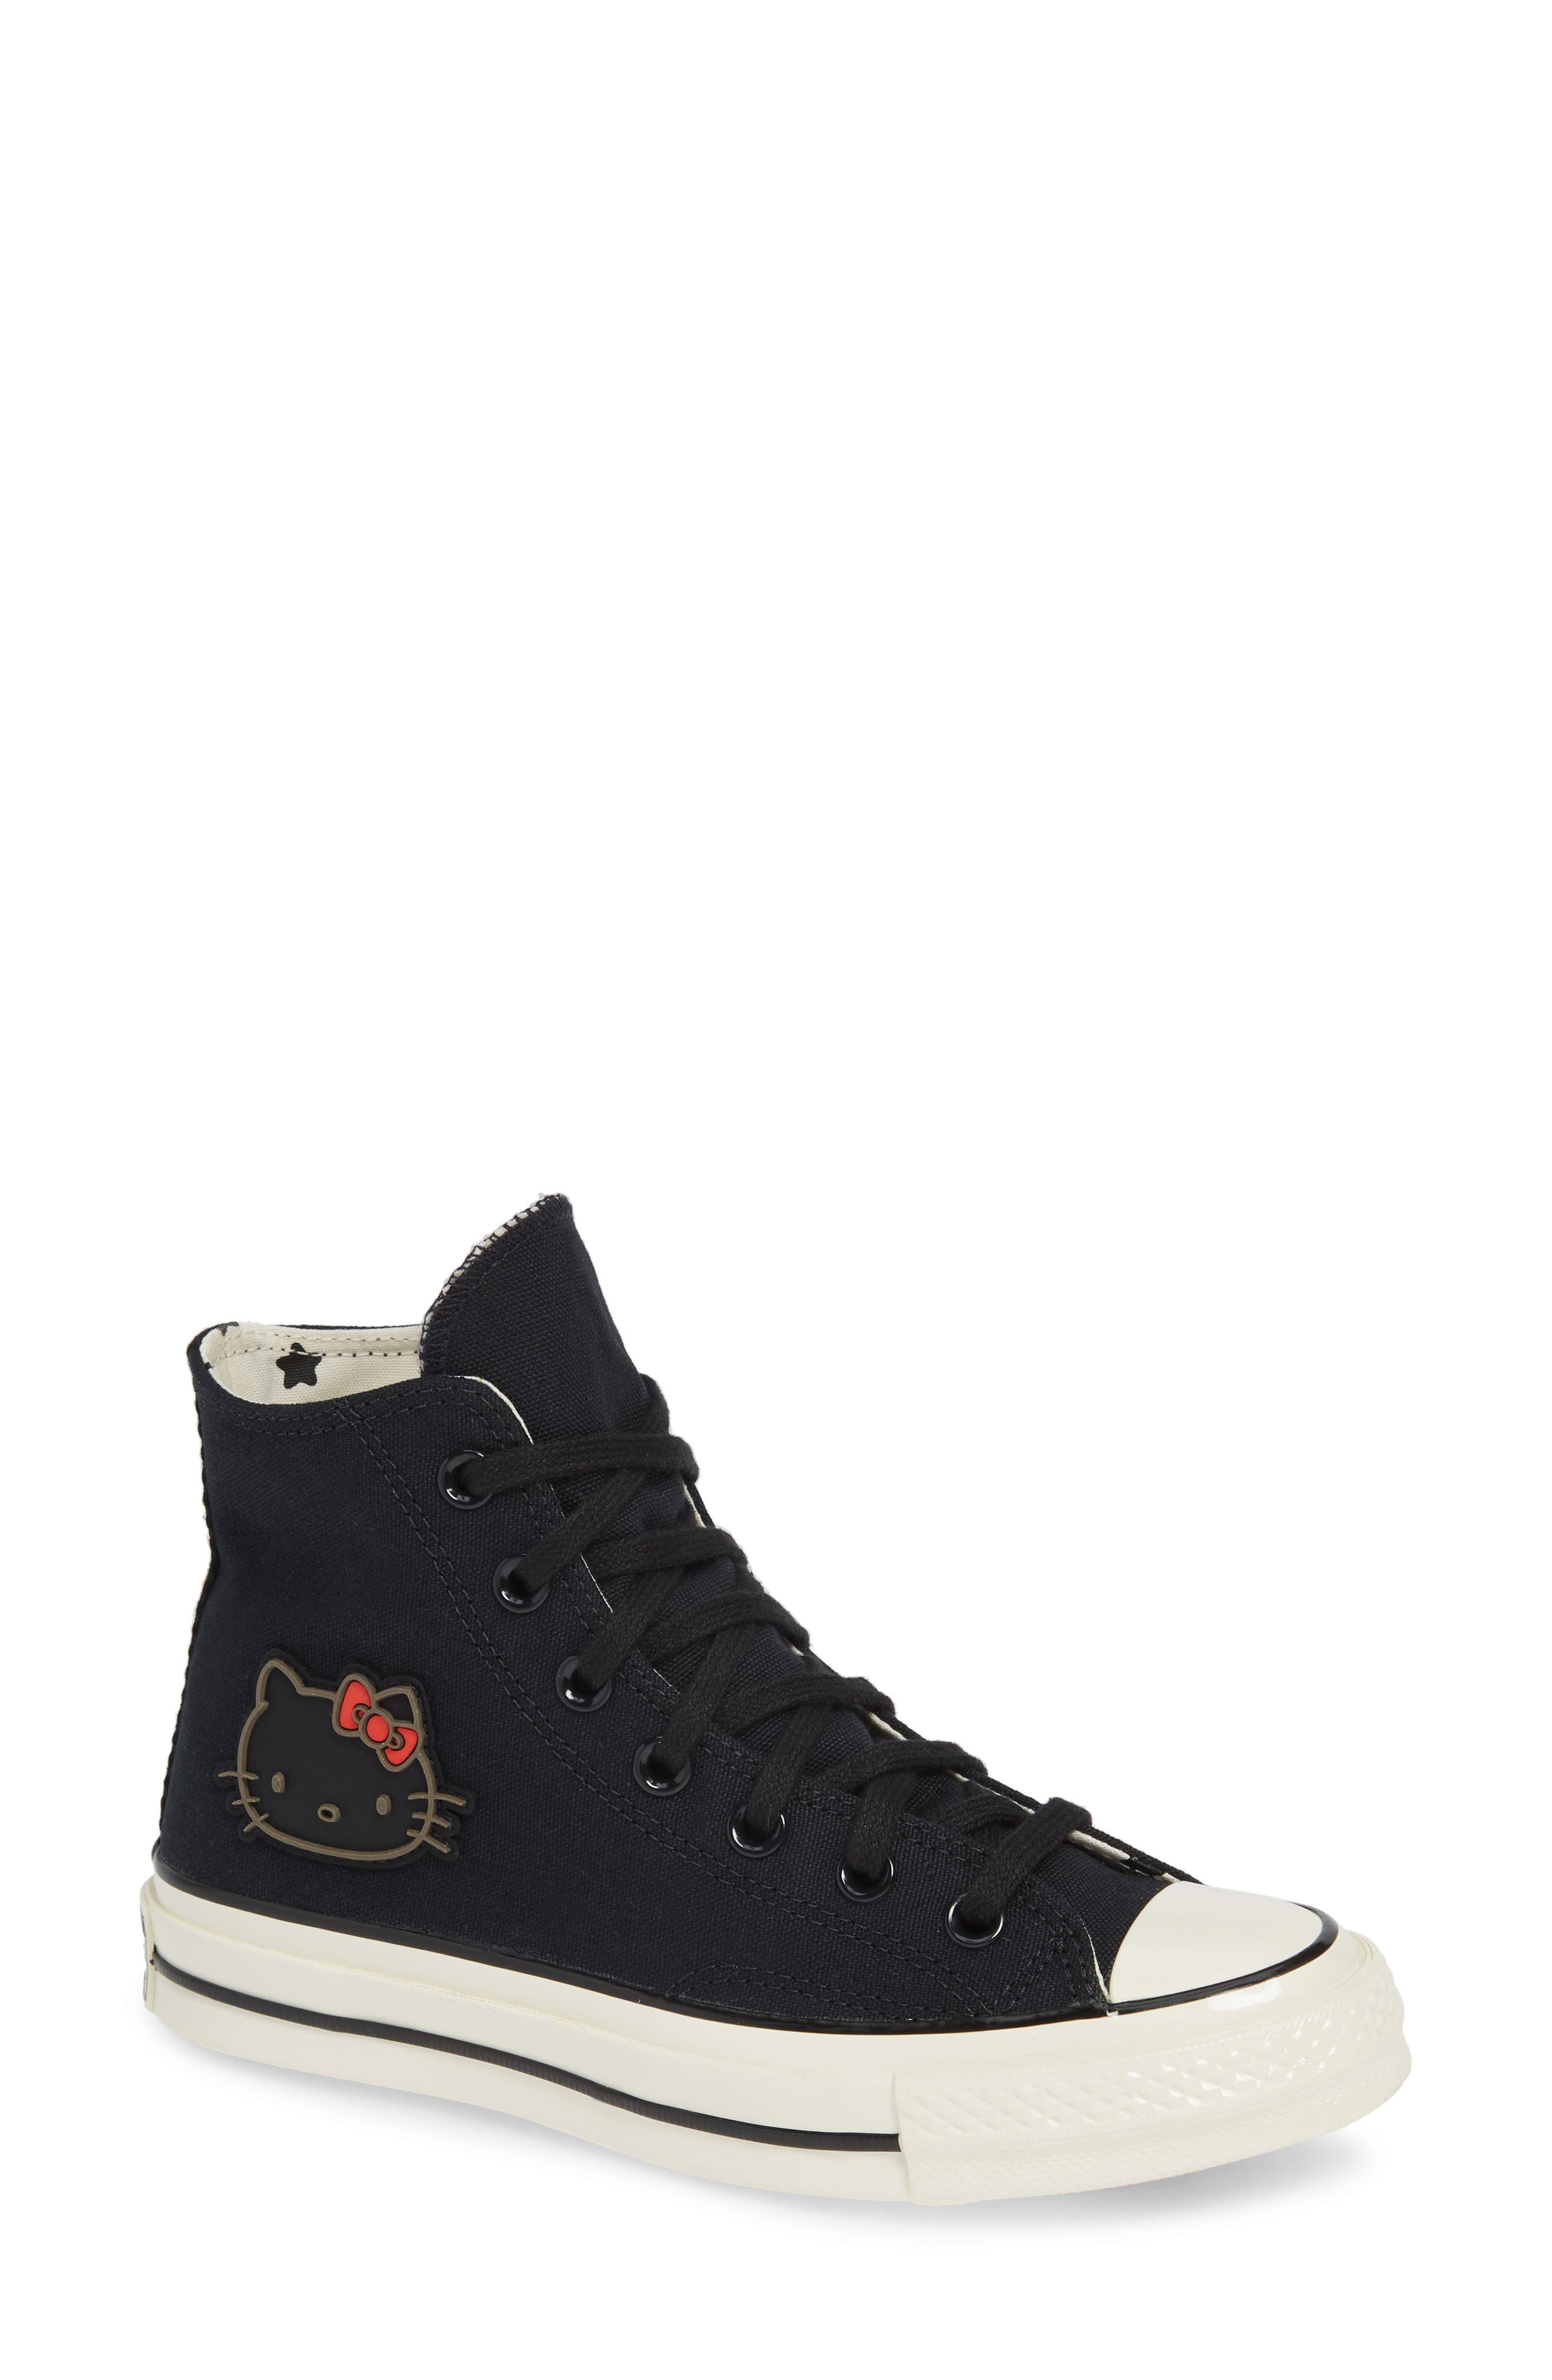 x Hello Kitty<sup>®</sup> Chuck Taylor<sup>®</sup> All Star<sup>®</sup> CT 70 High Top Sneaker, Main, color, CONVERSE BLACK